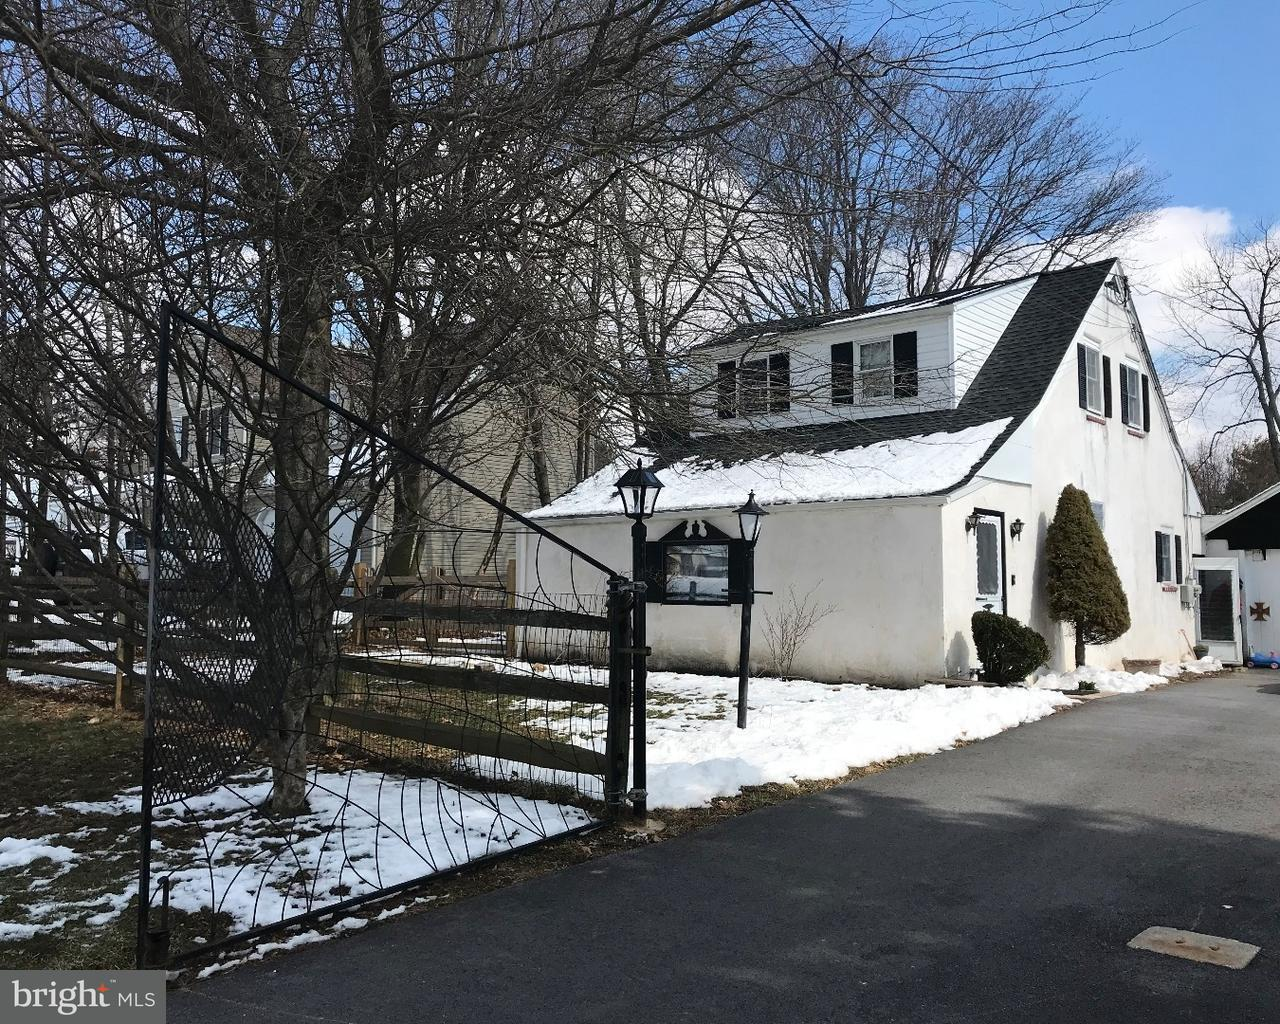 15 COUNTRY CLUB RD, COATESVILLE - Listed at $230,000, COATESVILLE